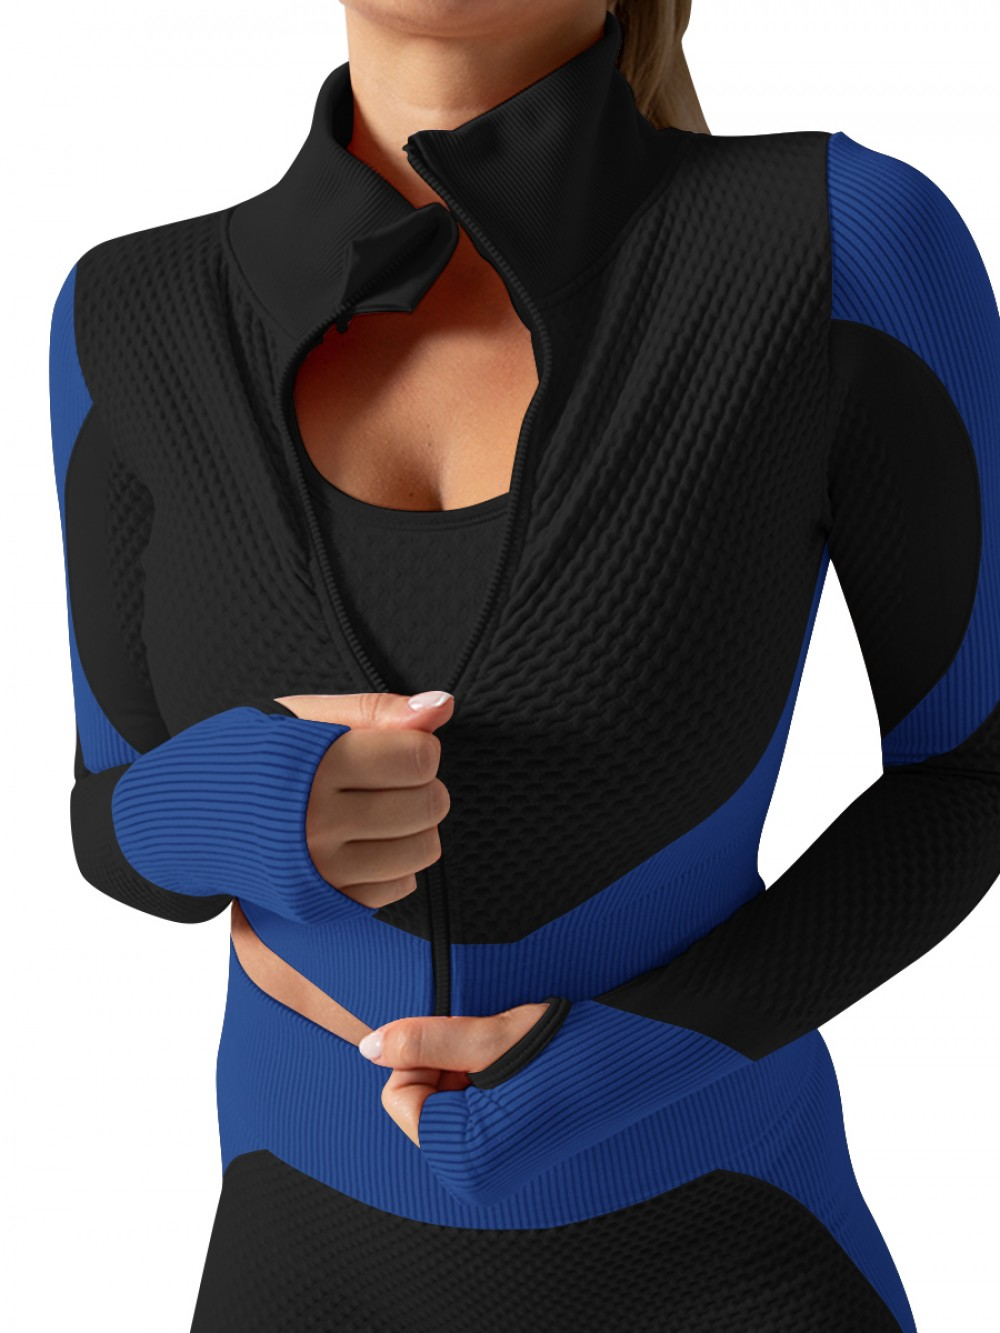 Blue Knit 3 Pieces Sports Suit With Zipper For Women Runner